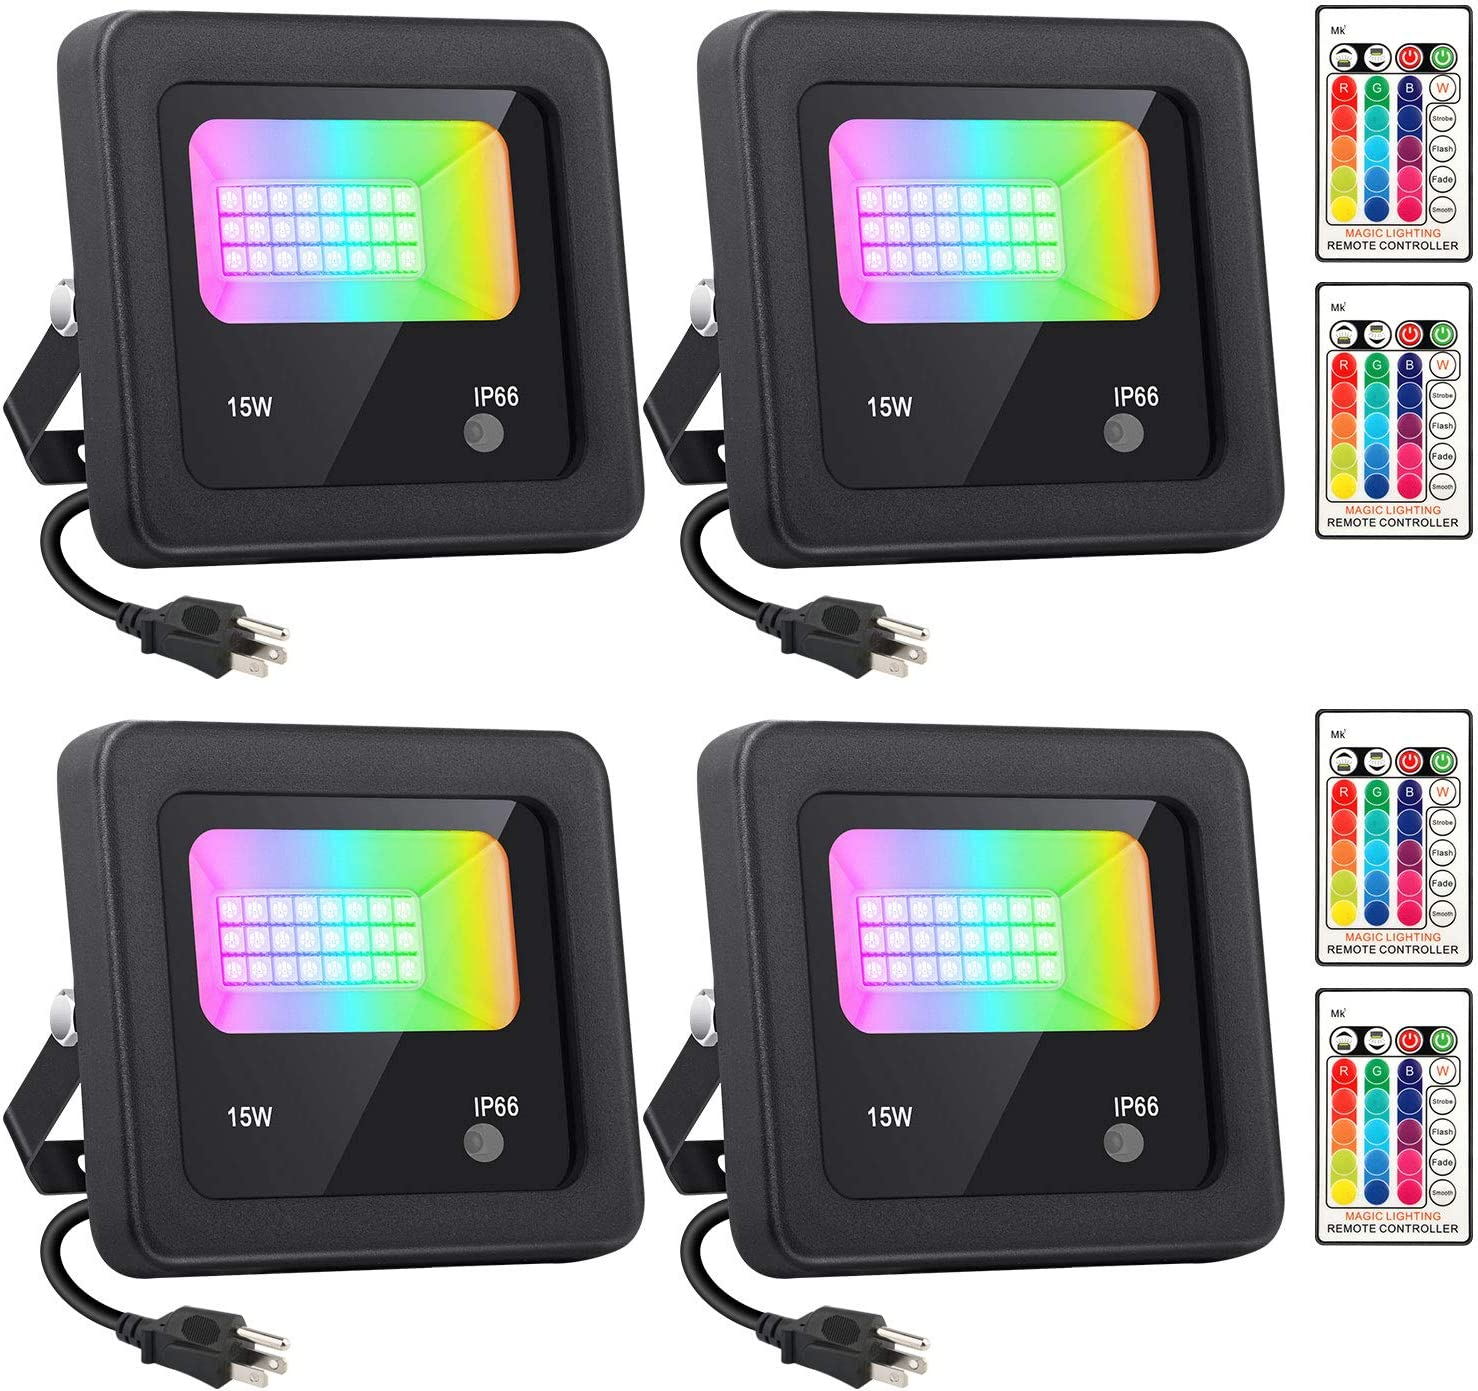 RGBW LED Flood Lights with Remote Control, 4 Pack 15W IP66 Waterproof Dimmable Color Change Light, 16 Colors 4 Modes Indoor Outdoor Wall Washer Spot Light for Stage Building Garden Landscape Lighting